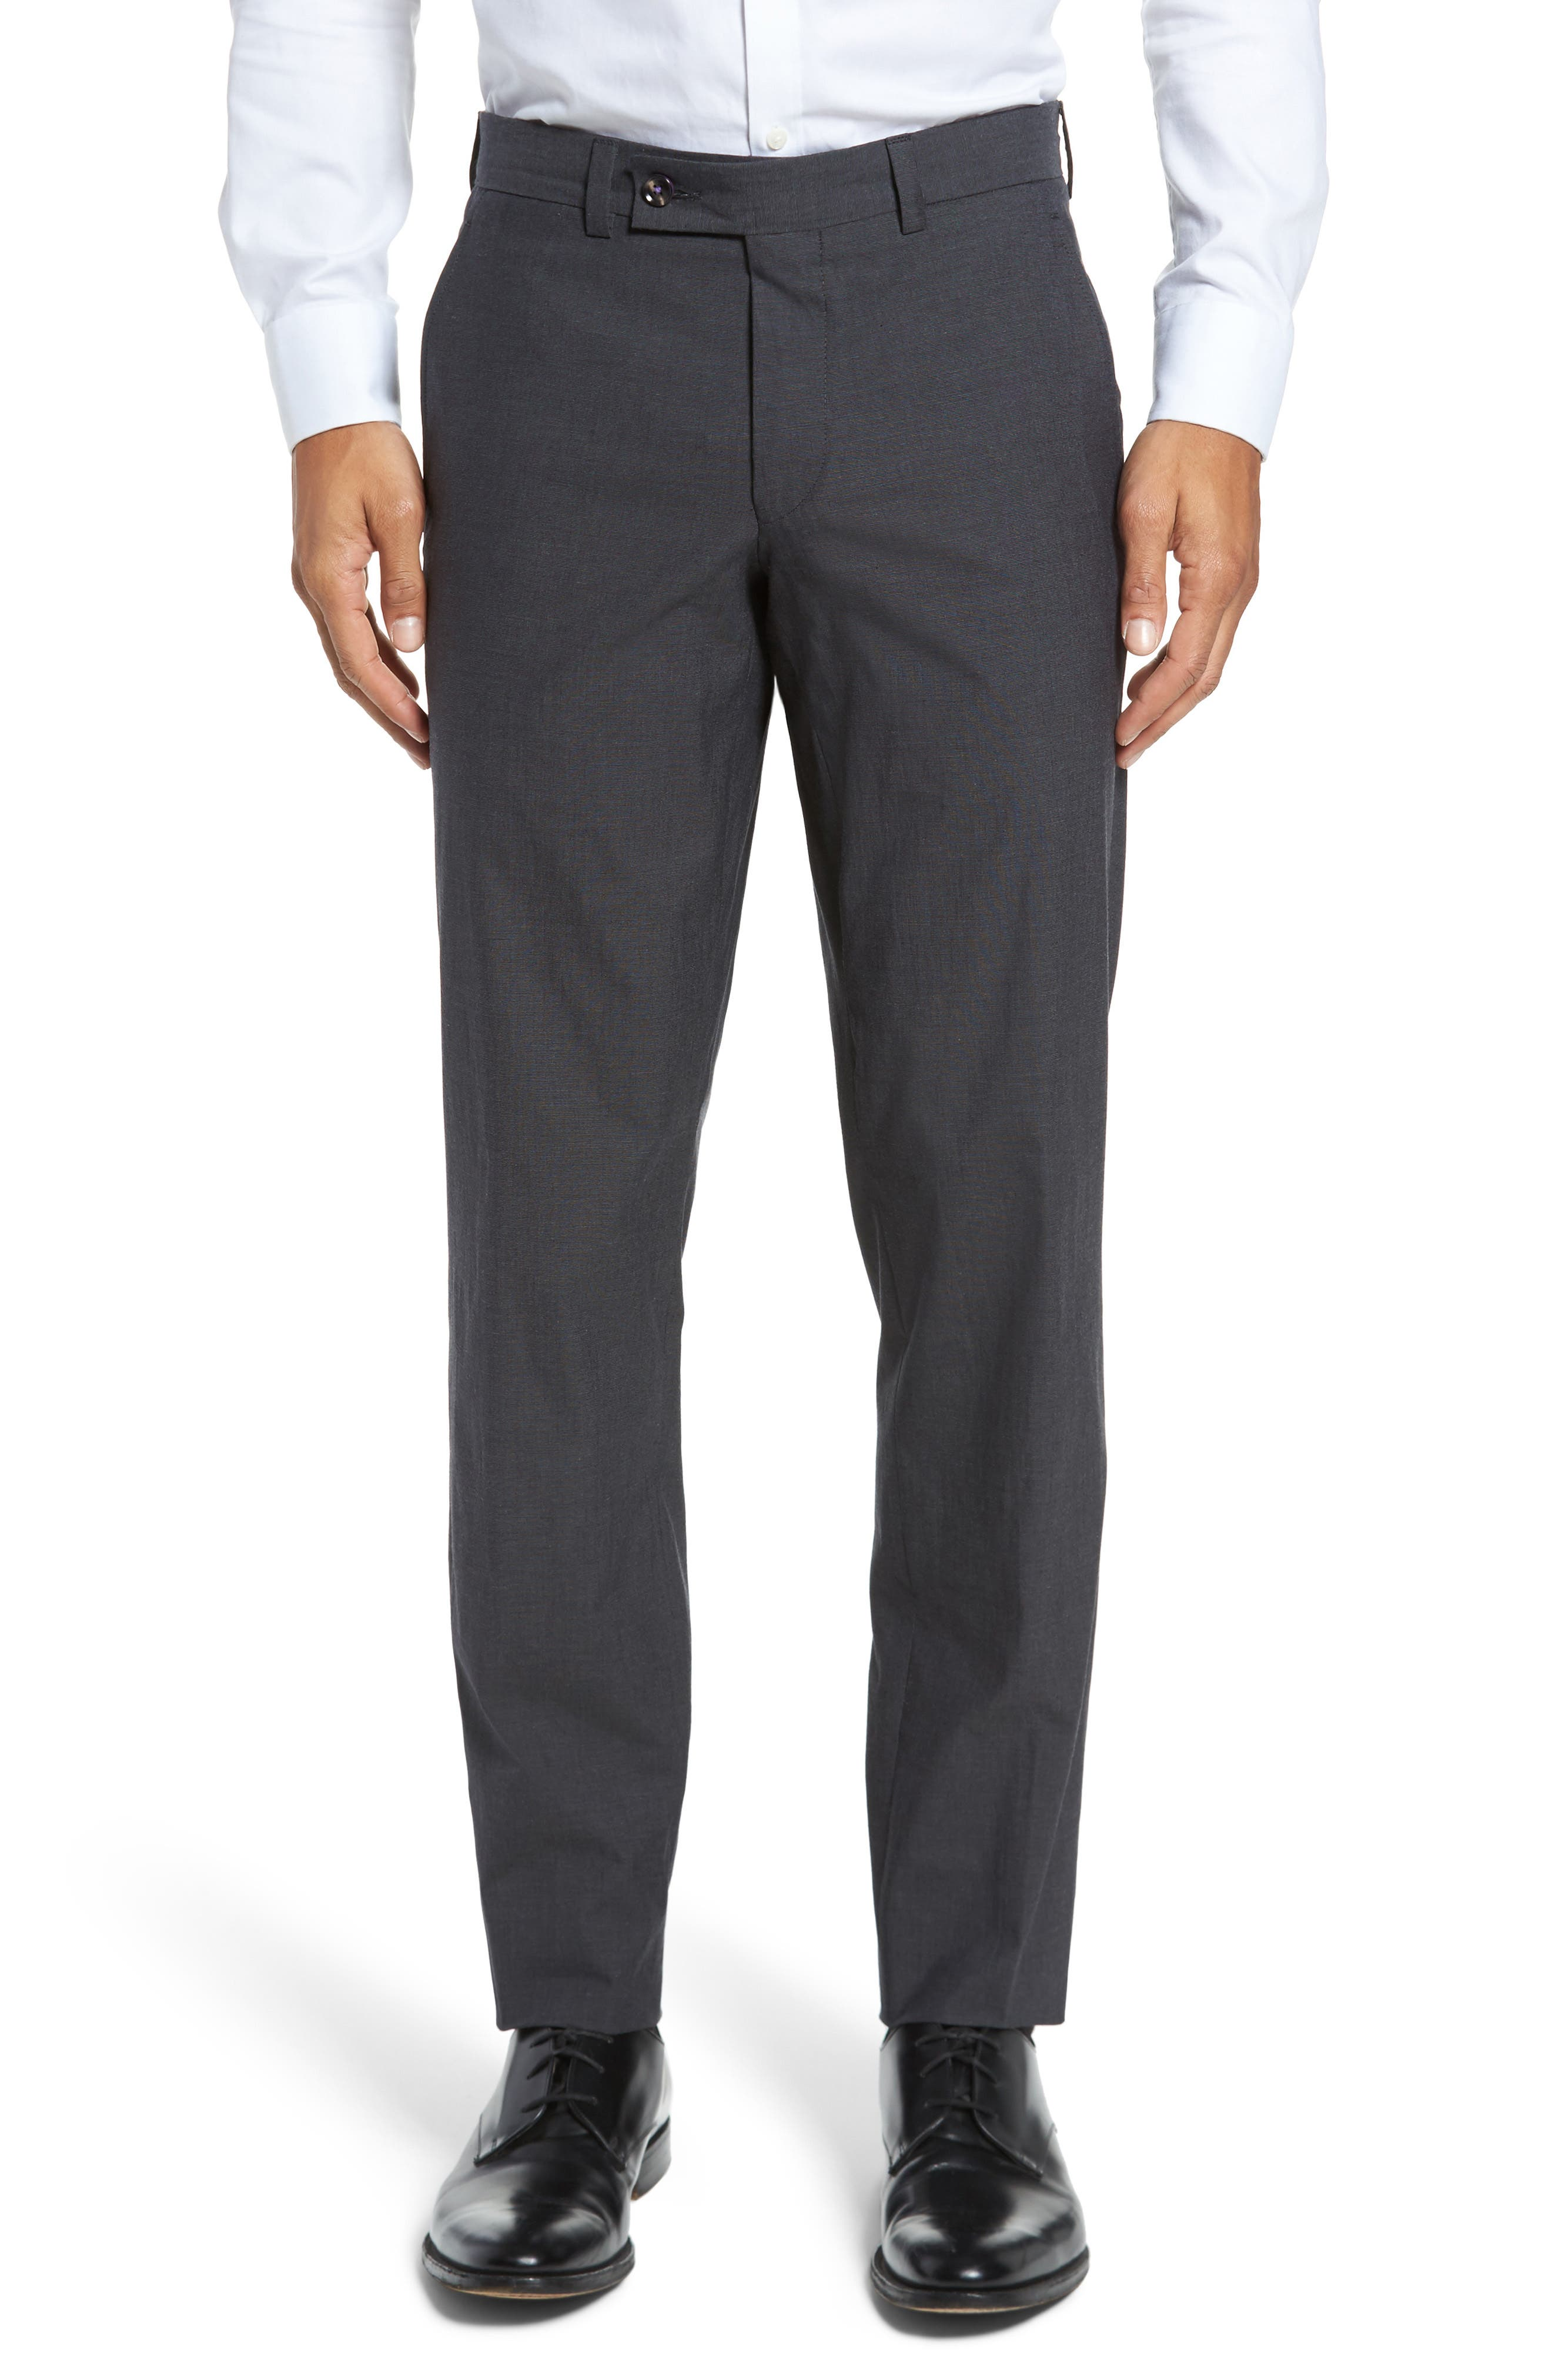 Jerome Flat Front Stretch Solid Cotton Trousers,                             Main thumbnail 1, color,                             010